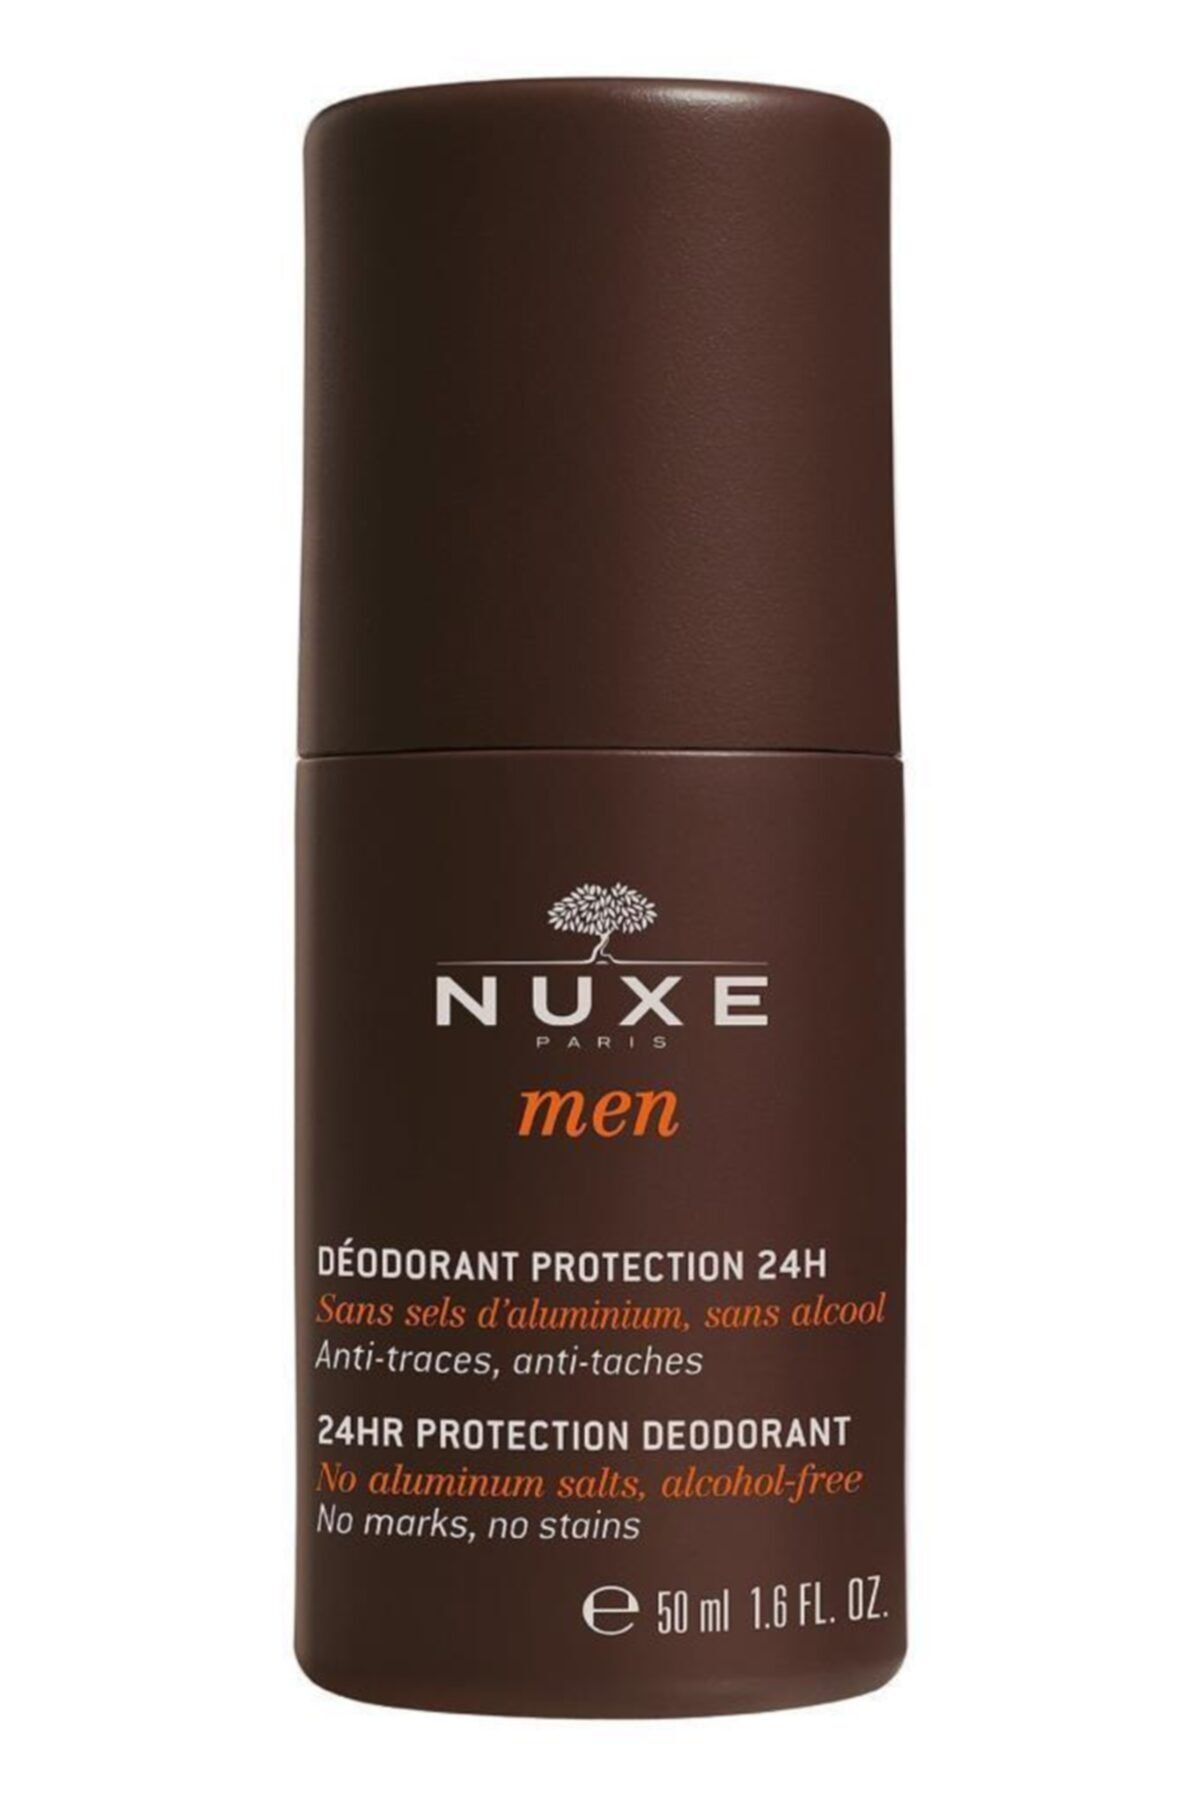 Nuxe Men Protection Deodorant 50 Ml 1